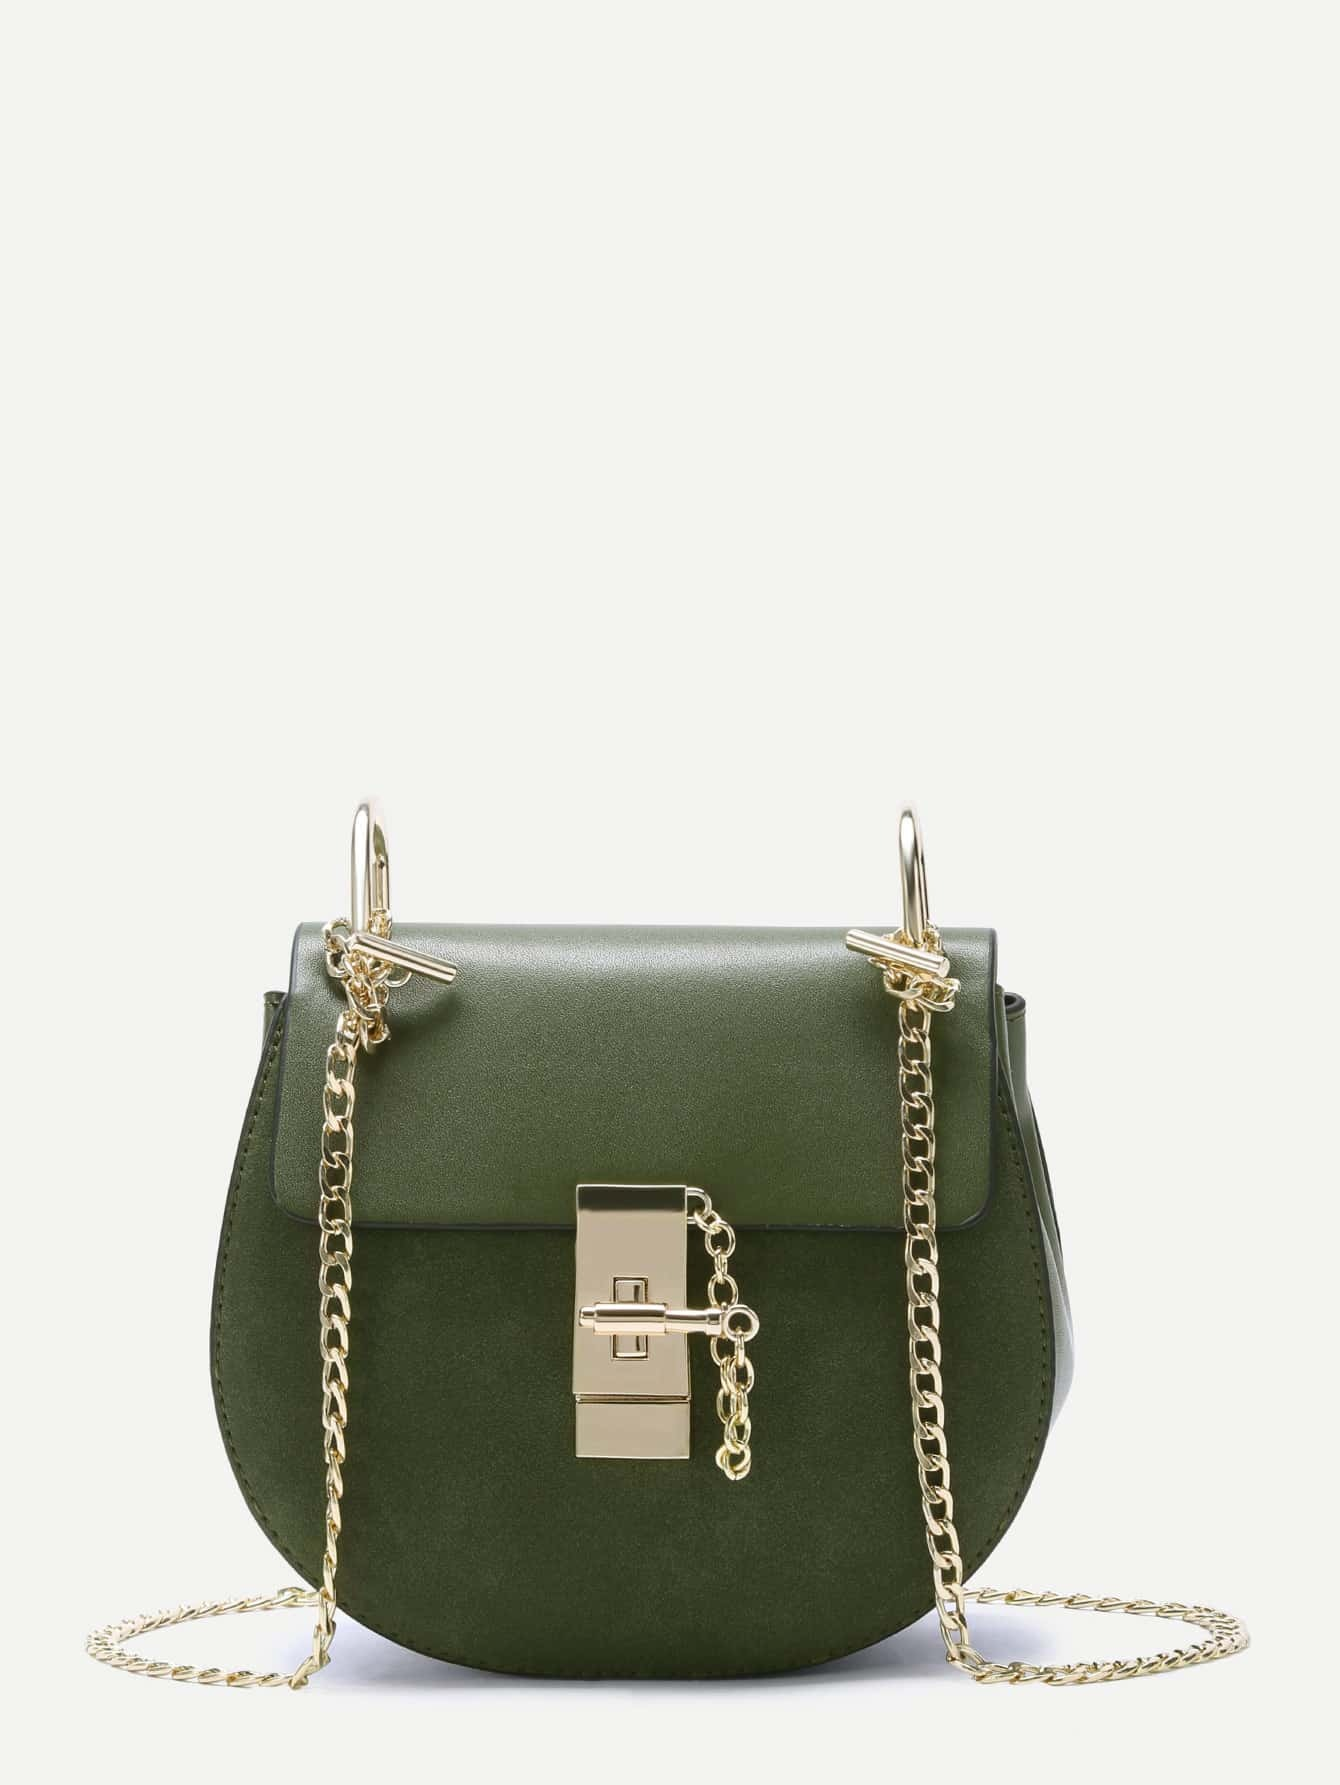 Army Green Flap PU Saddle Bag With Chain Strap Image